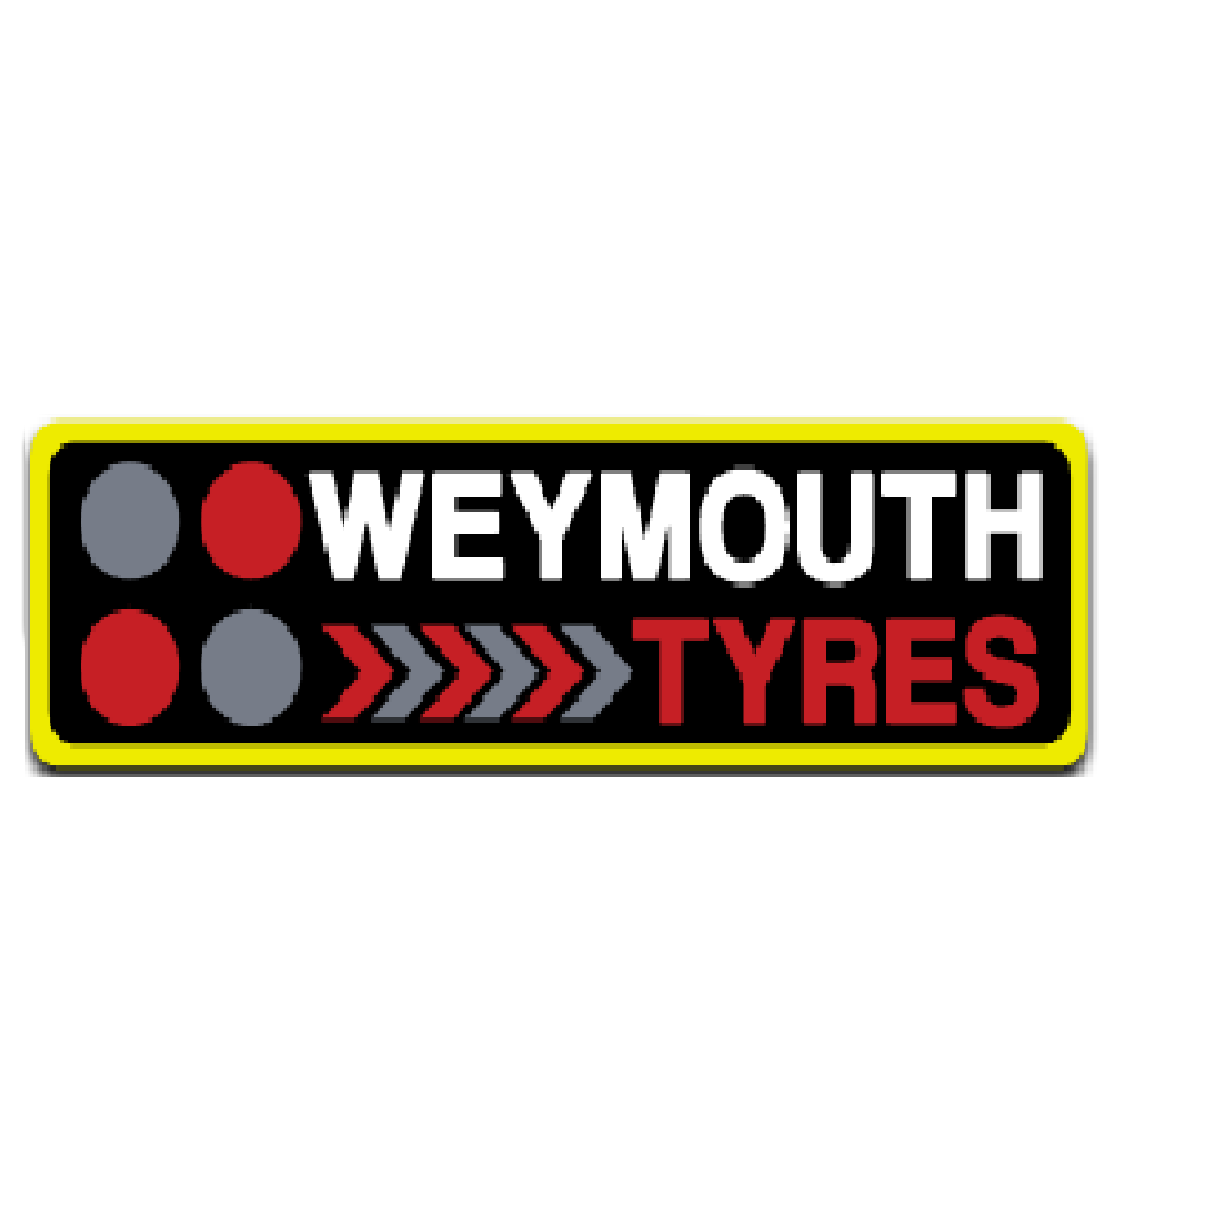 Weymouth Tyres Limited - Weymouth, Dorset DT4 9DN - 01305 759063   ShowMeLocal.com